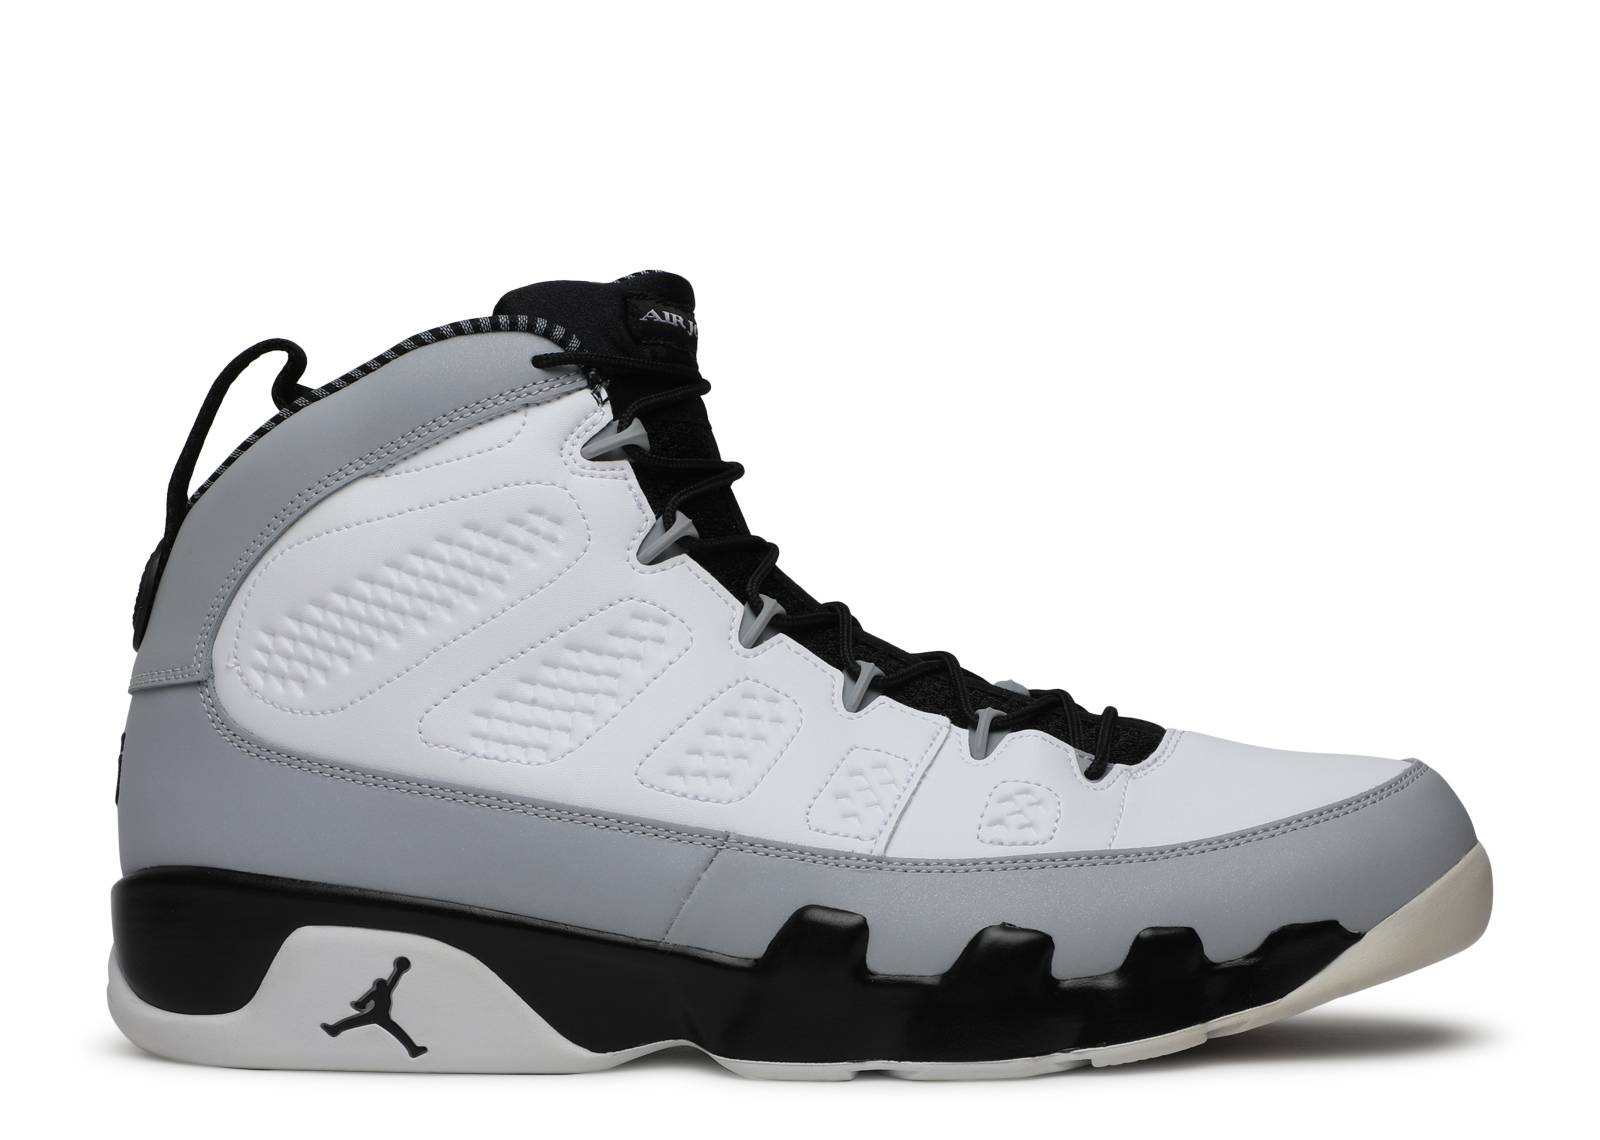 Mens Jordan 9 Cool Grey/WhiteShoes_a1428